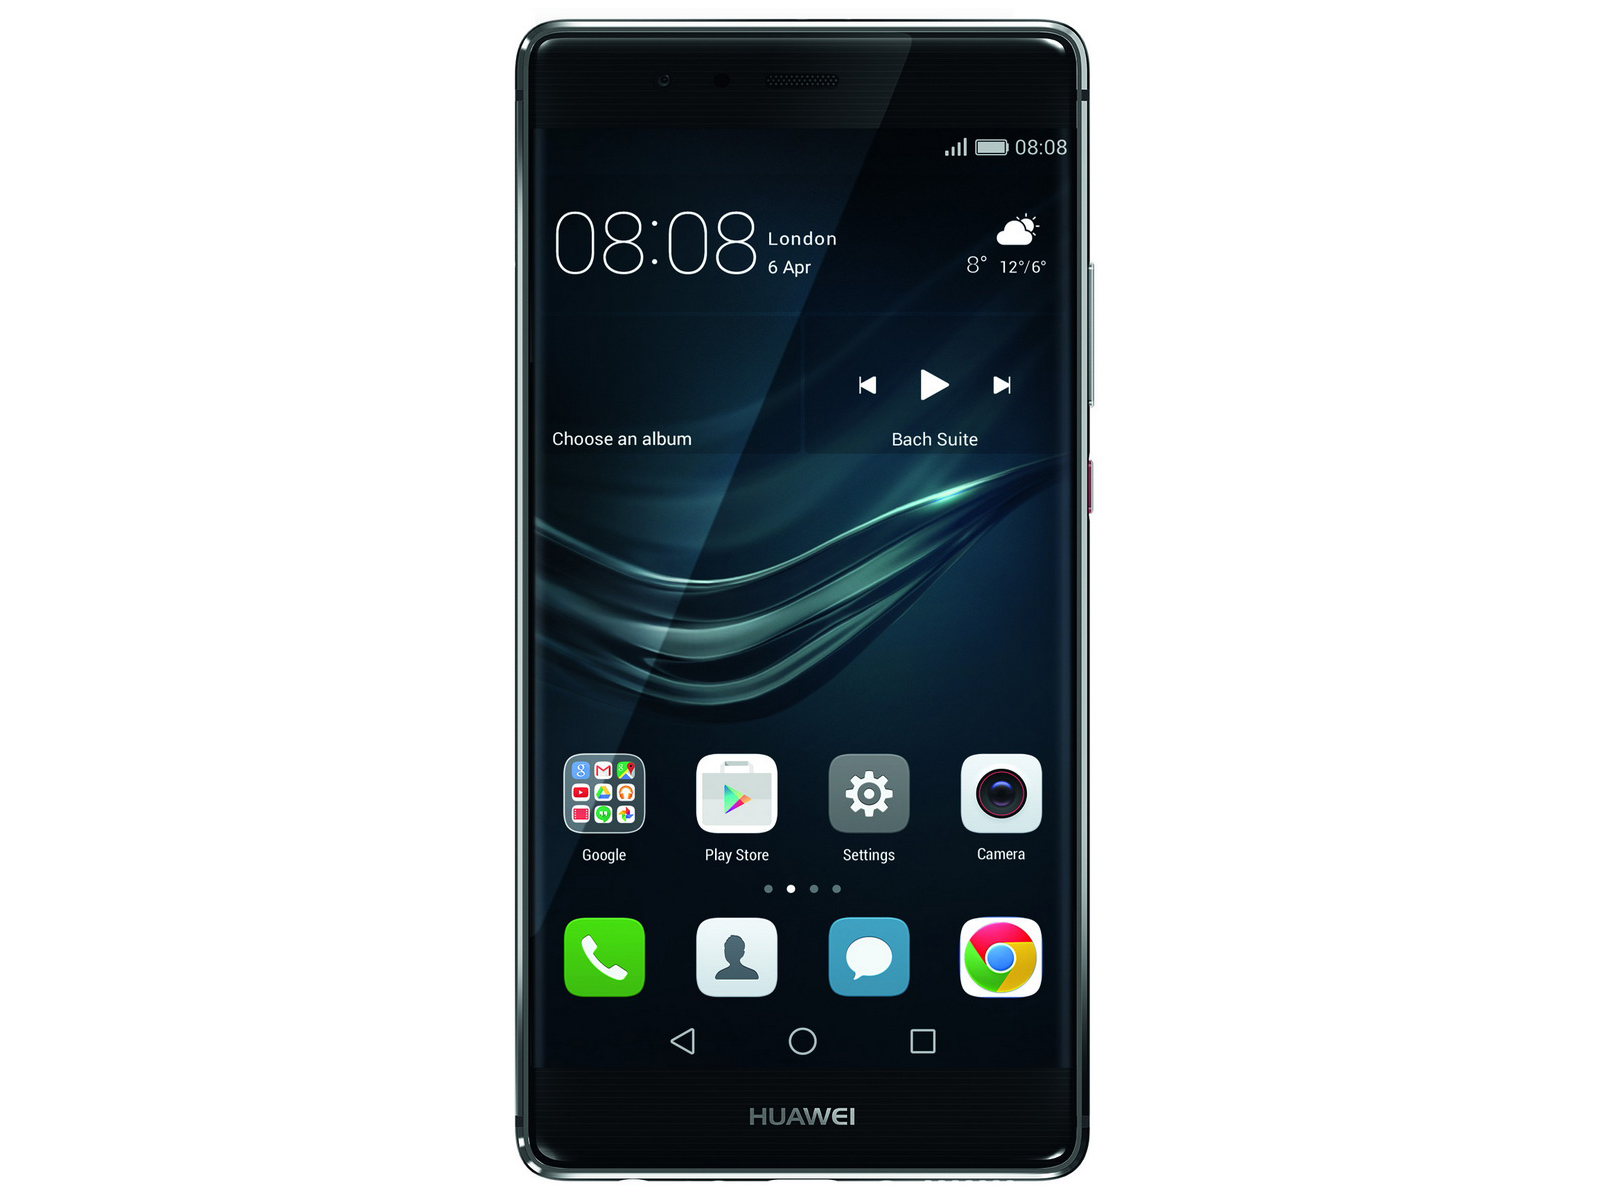 Huawei P9 Smartphone With Best Performance